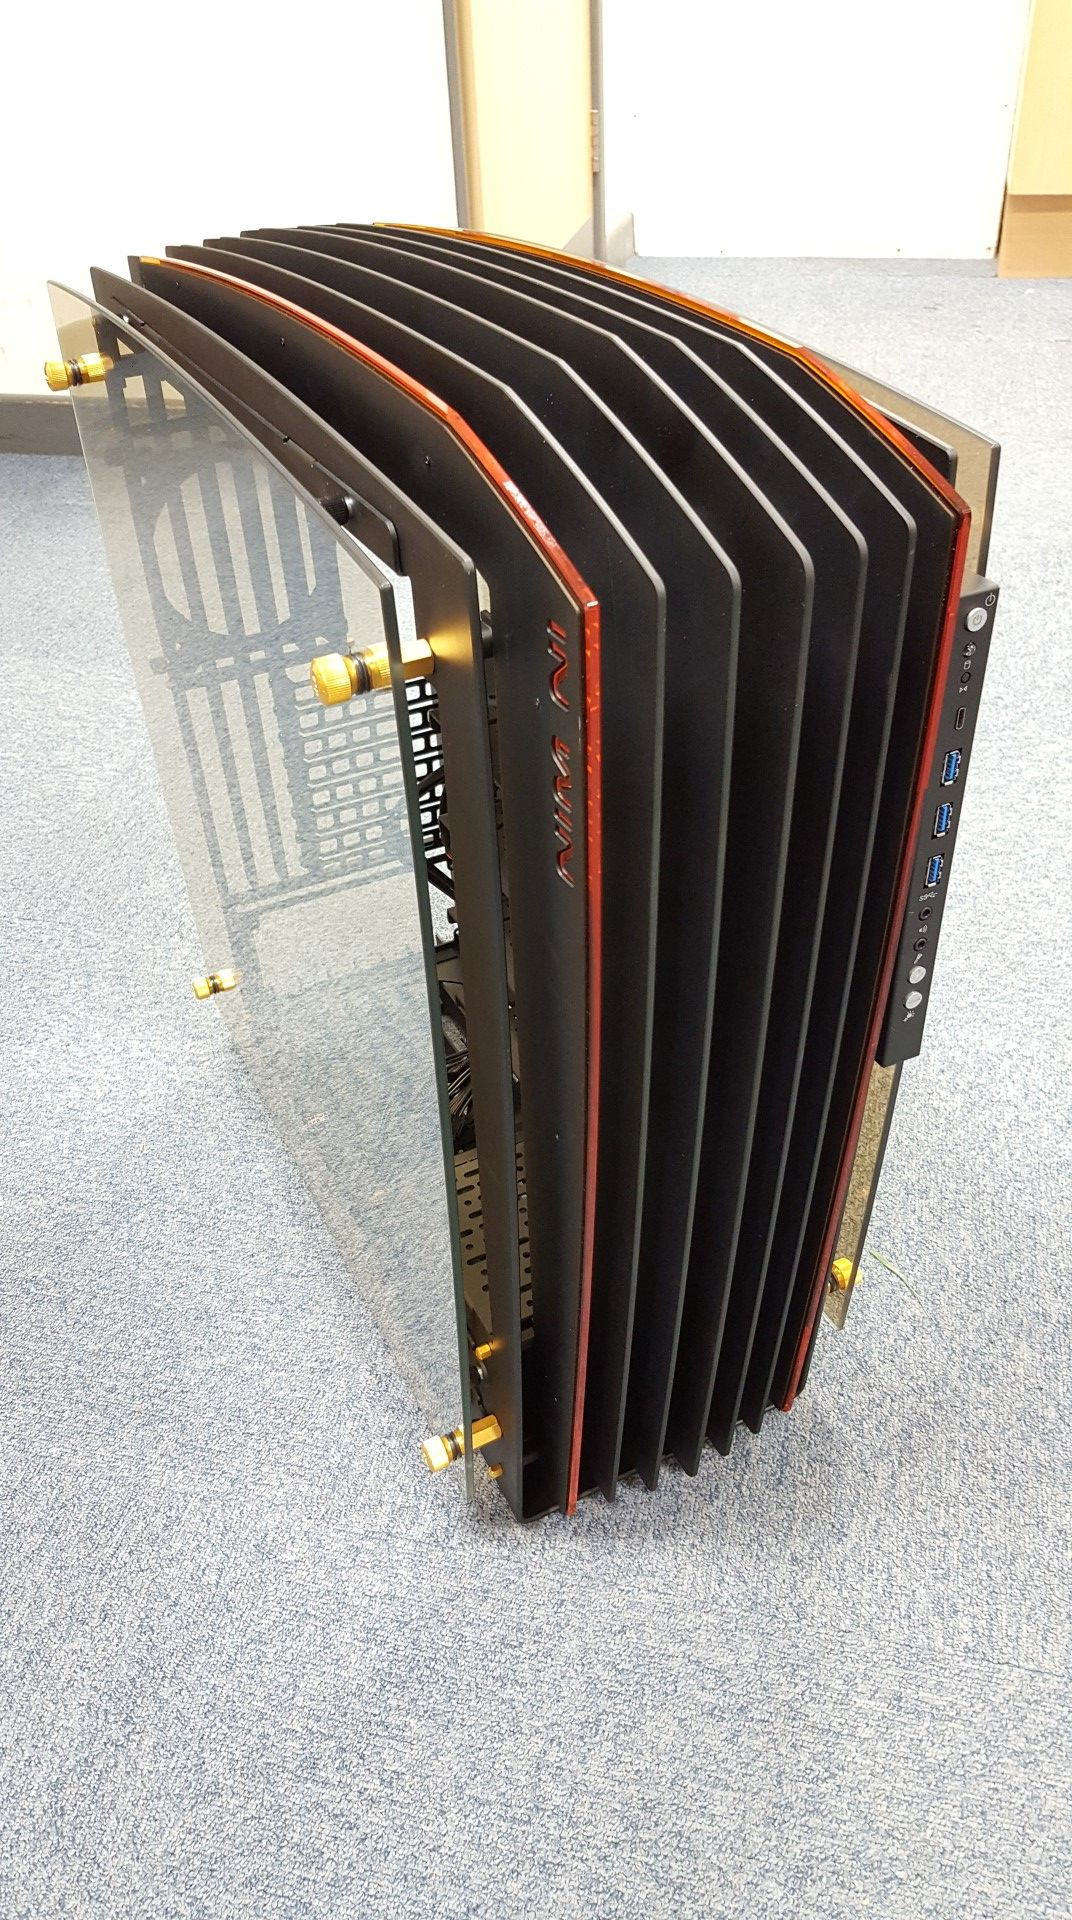 In Win H Frame 2.0 Open Air Chassis PC Case   Black/Amber